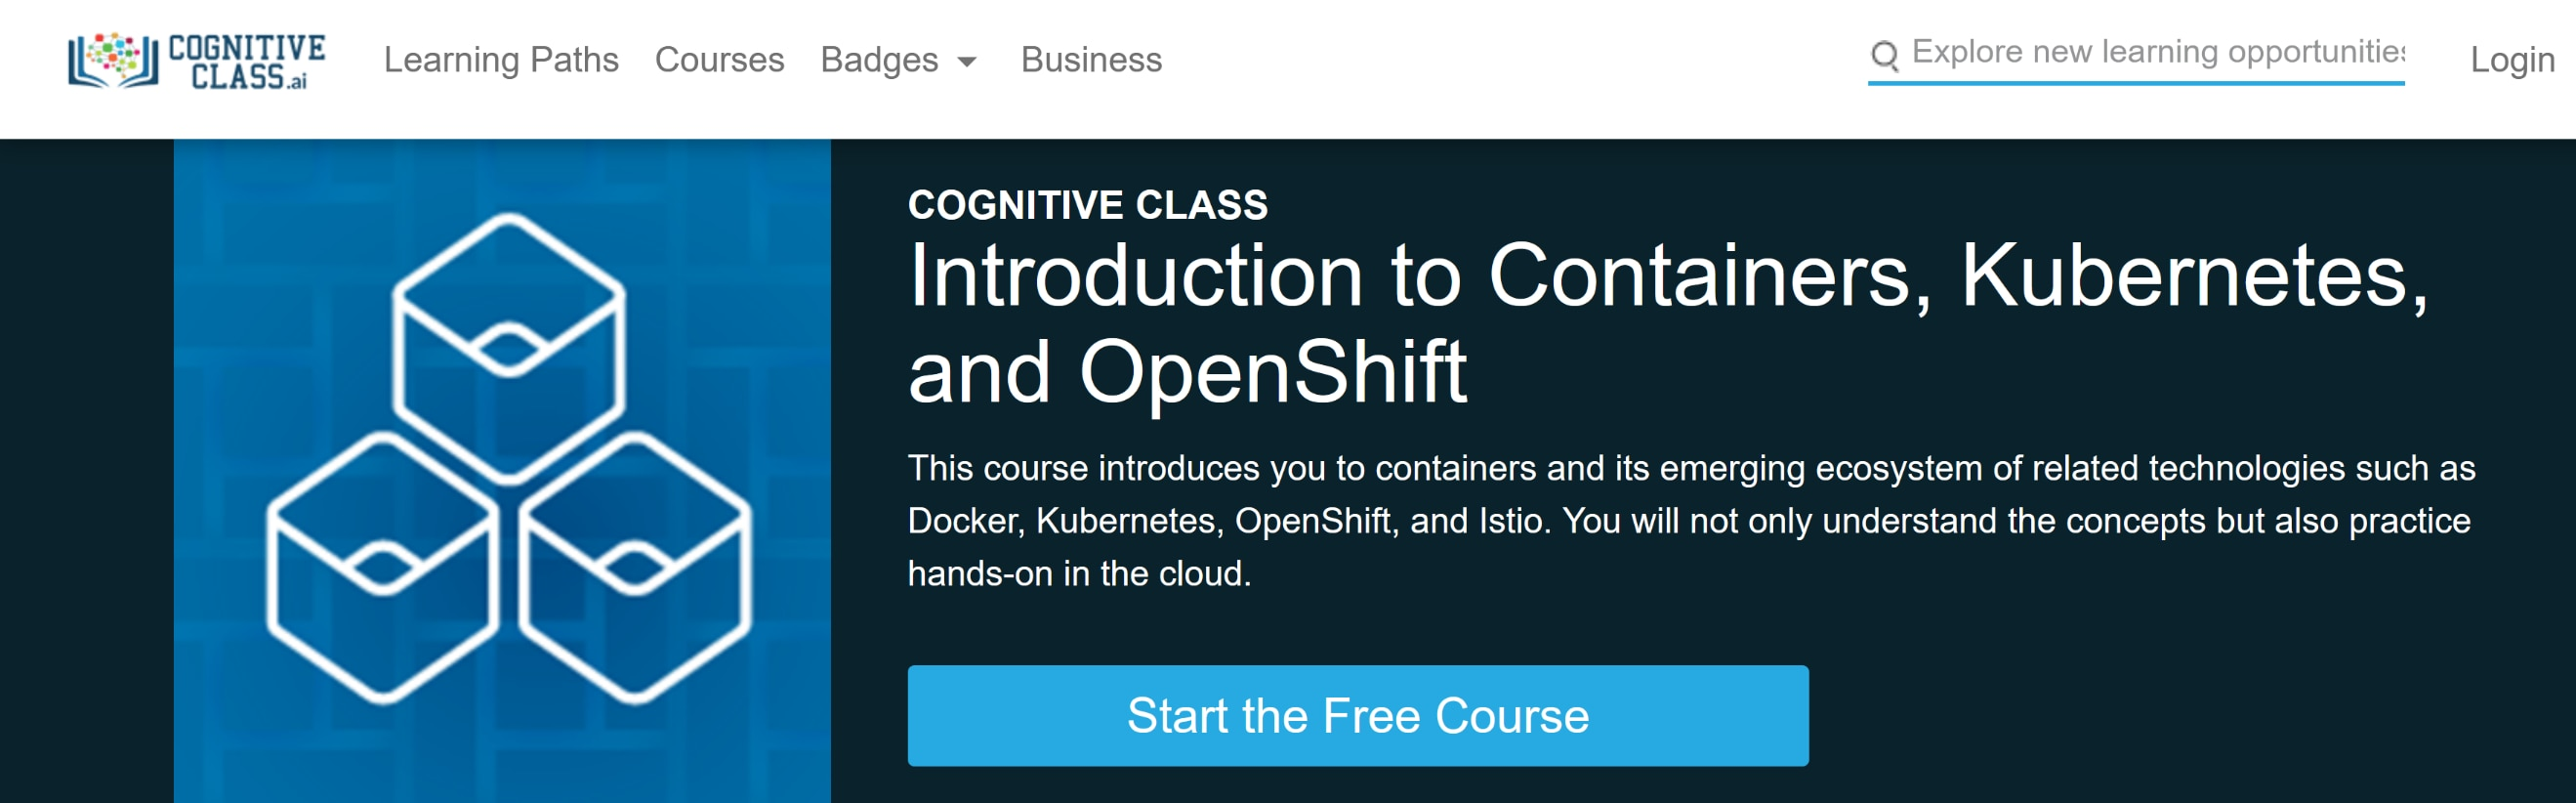 Screen shot of the Introduction to Containers, Kubernetes and OpenShift course enrollment page on CognitiveClass.ai